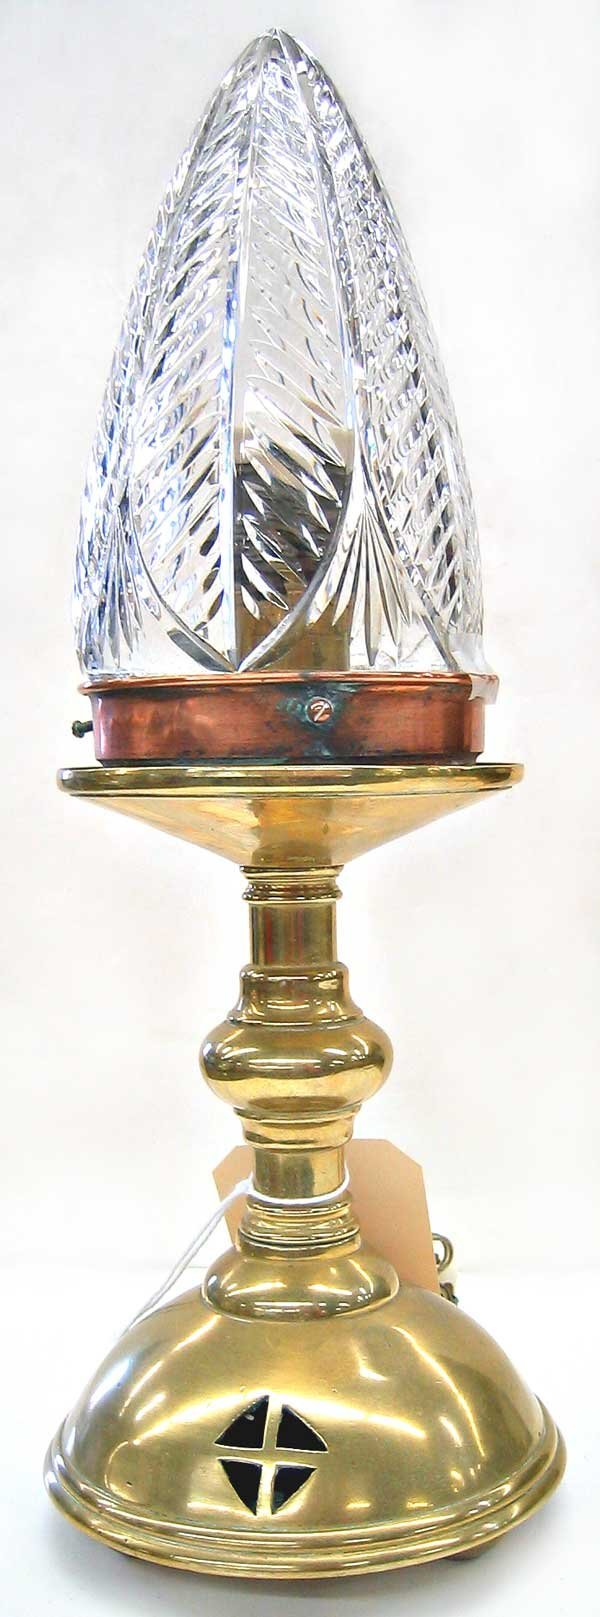 2972: Brass table lamp